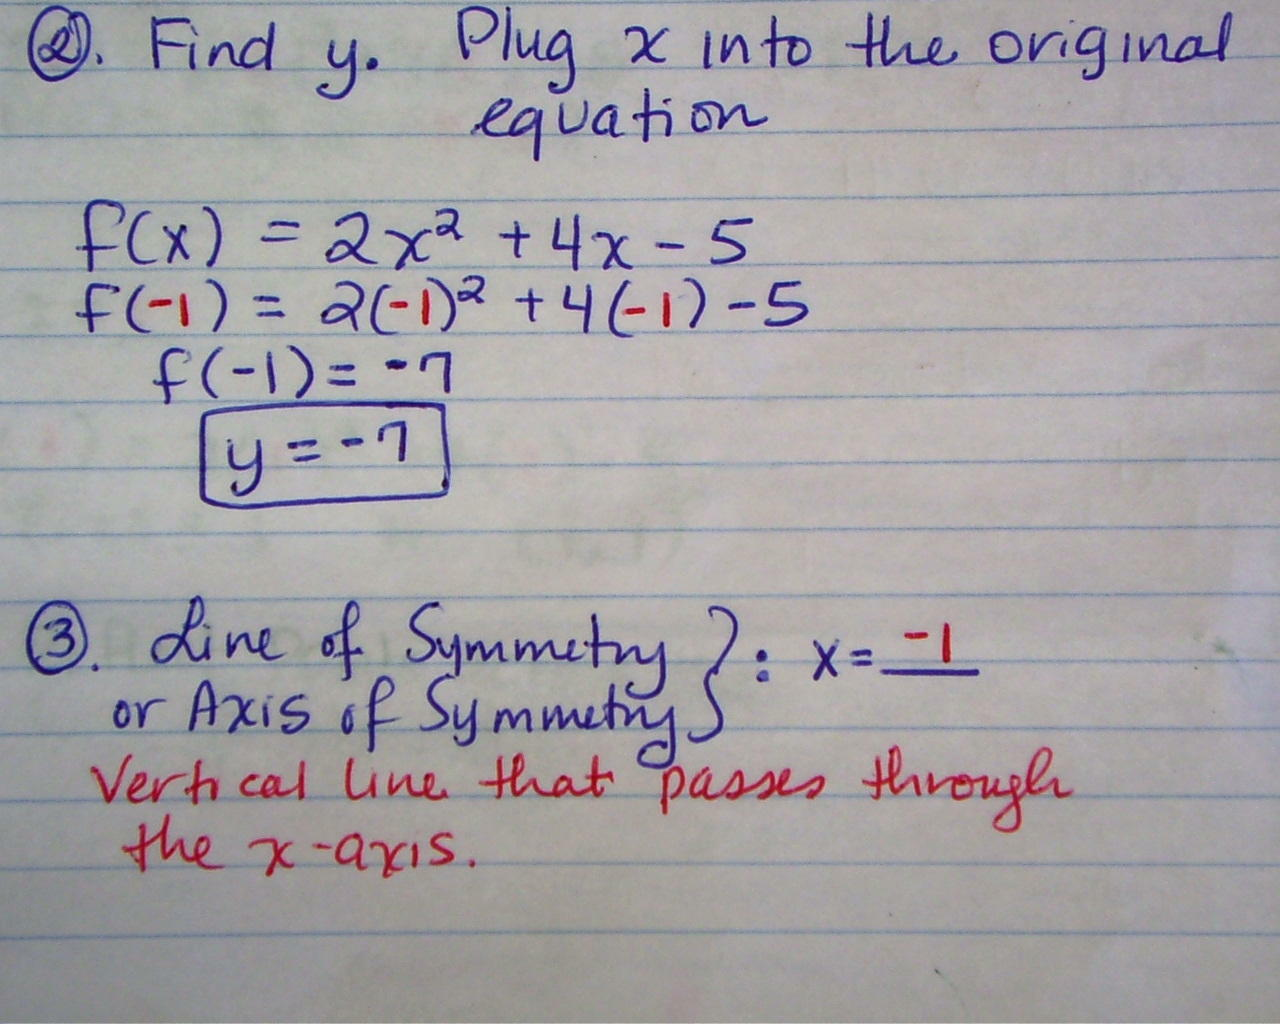 Chandra harriss blog math 2 support how to graph in standard form pg1 view this photo pg2 view this photo falaconquin